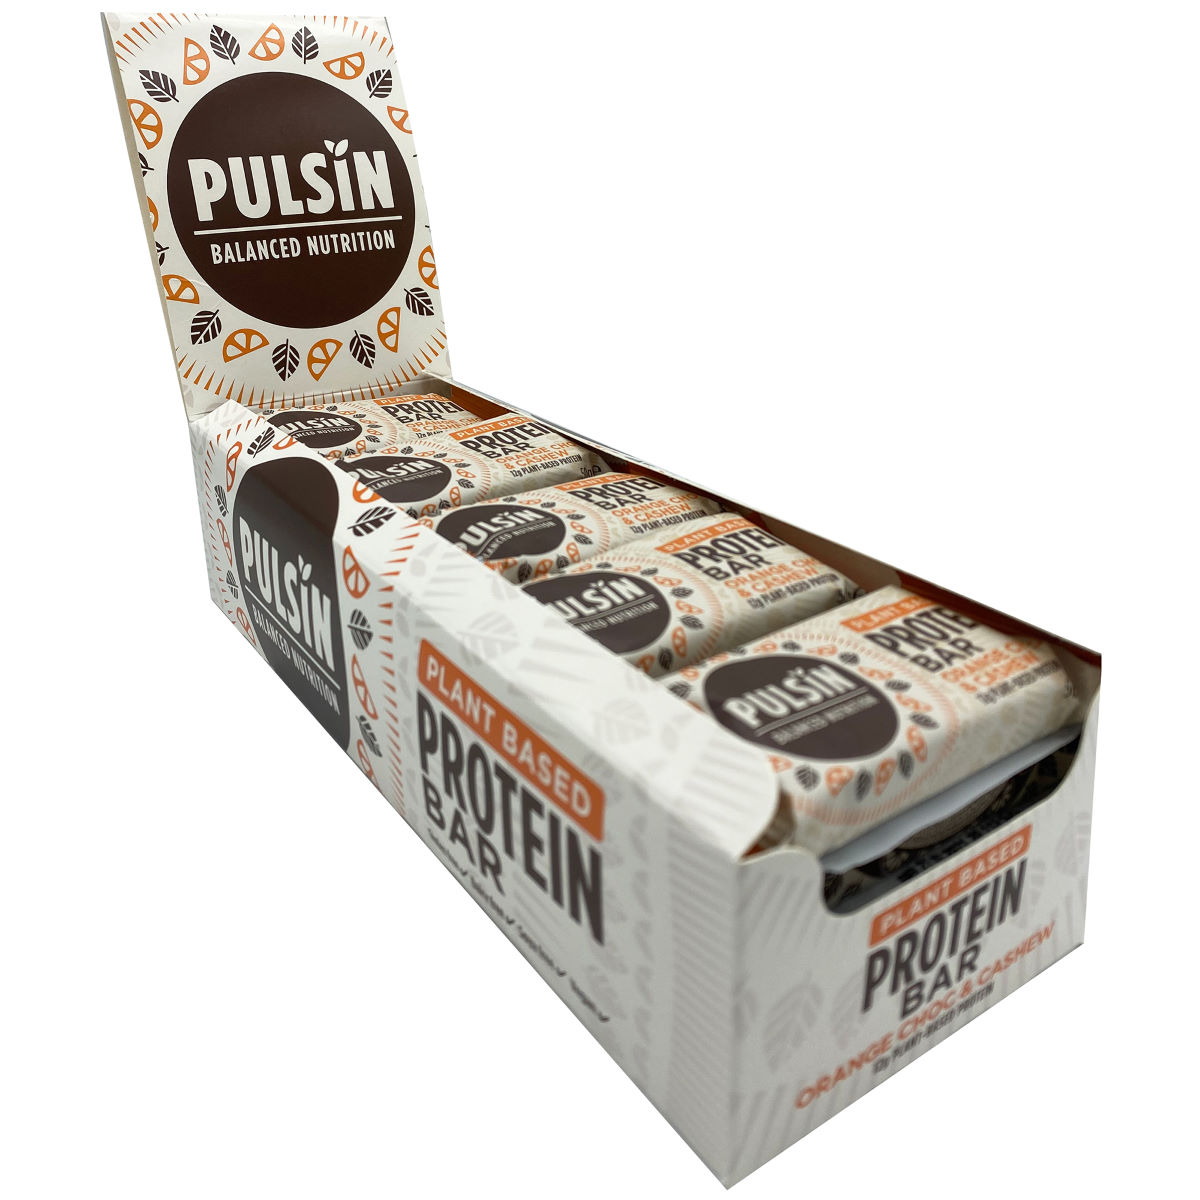 Pulsin Protein Booster Bars (18 X 50g) - 50g Orange Choc Chip  Bars